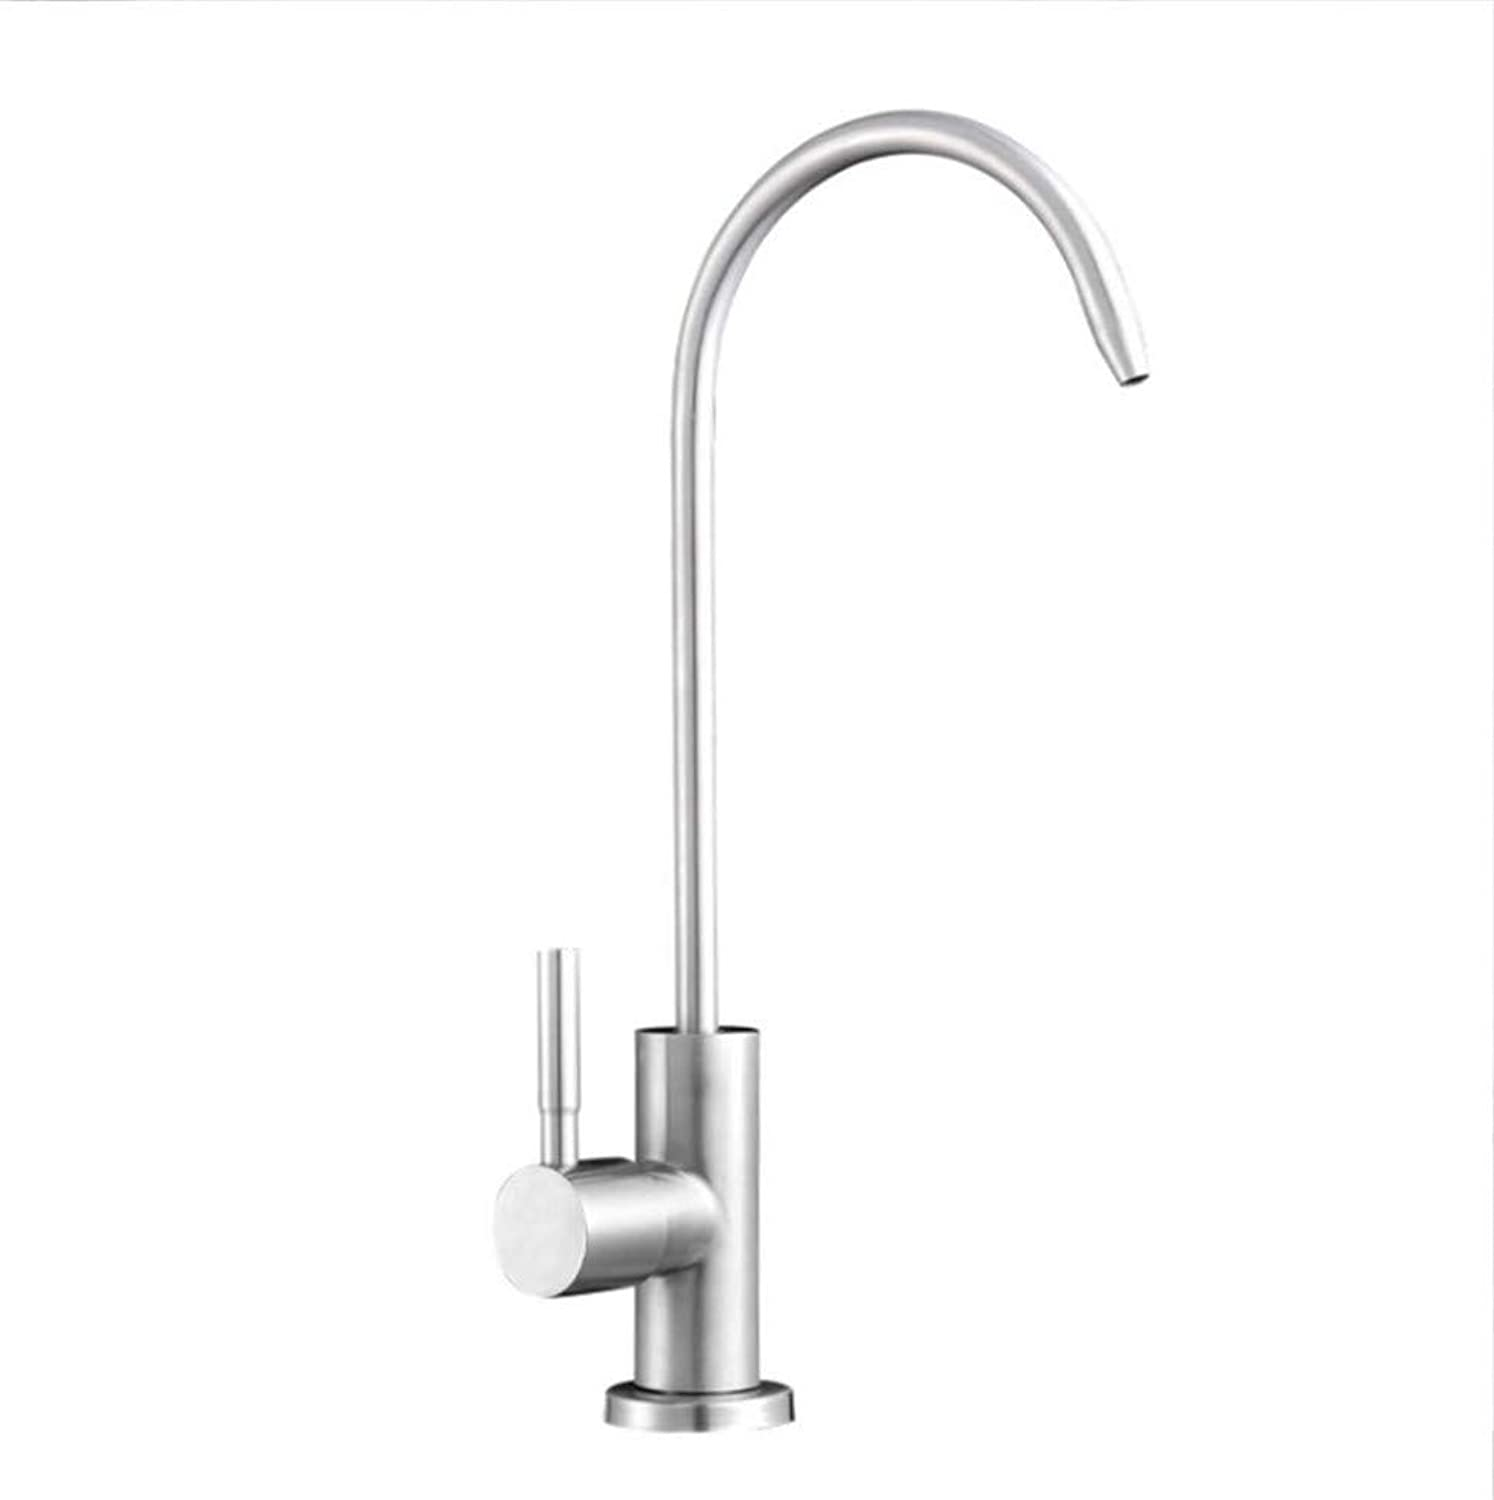 Water Tap Kitchen Taps Faucet Modern Kitchen Sink Taps Stainless Steel304 Stainless Steel Single-Cold Kitchen Faucet